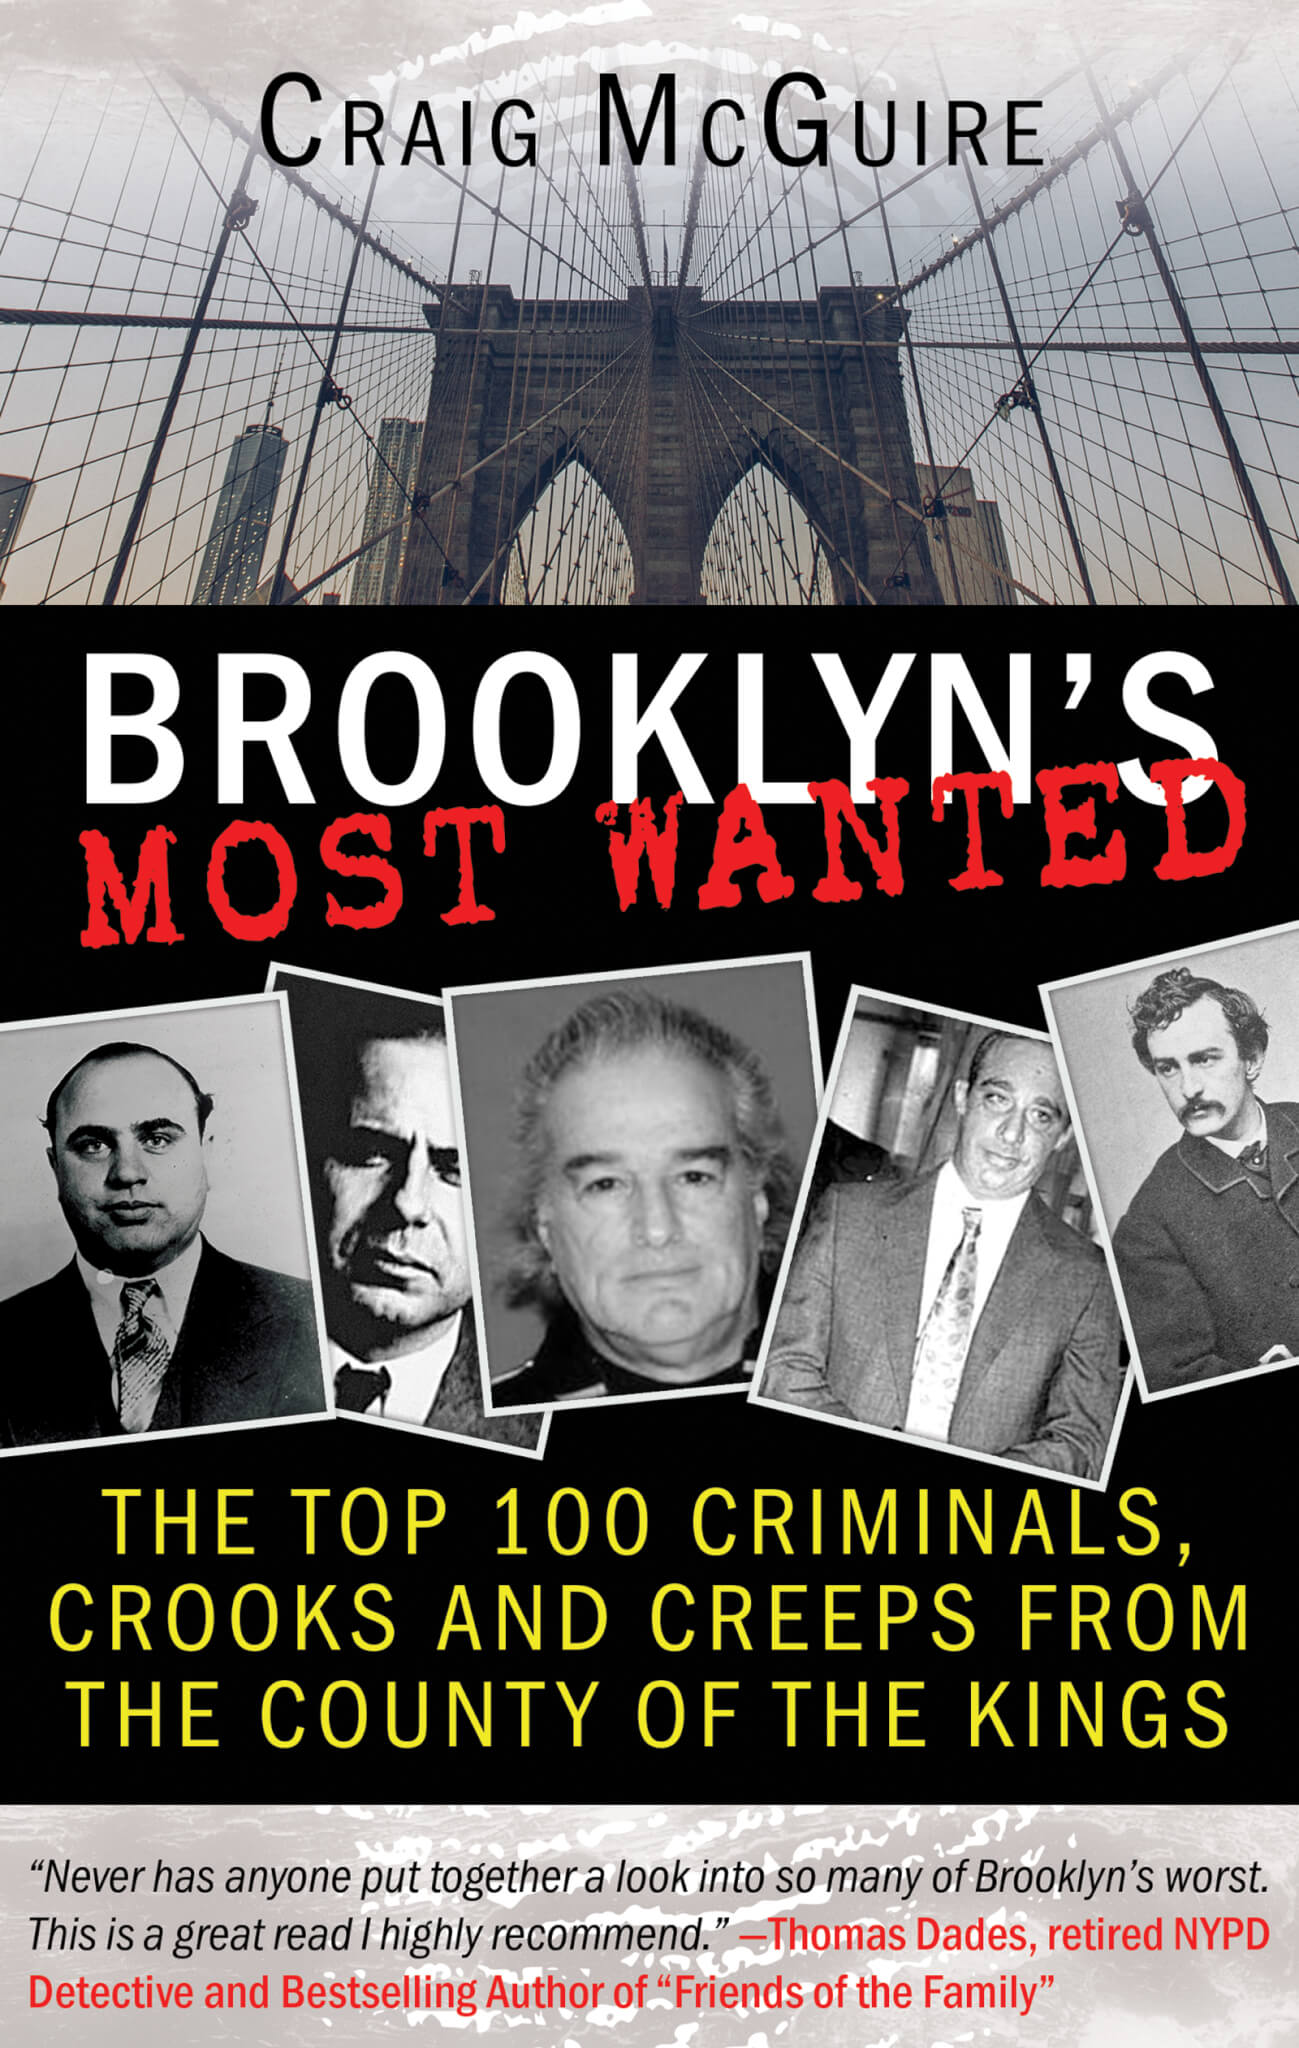 BROOKLYN'S MOST WANTED: Ranking the Top 100 Most Notorious Criminals, Crooks and Creeps from the County of the Kings True Crime Books Available